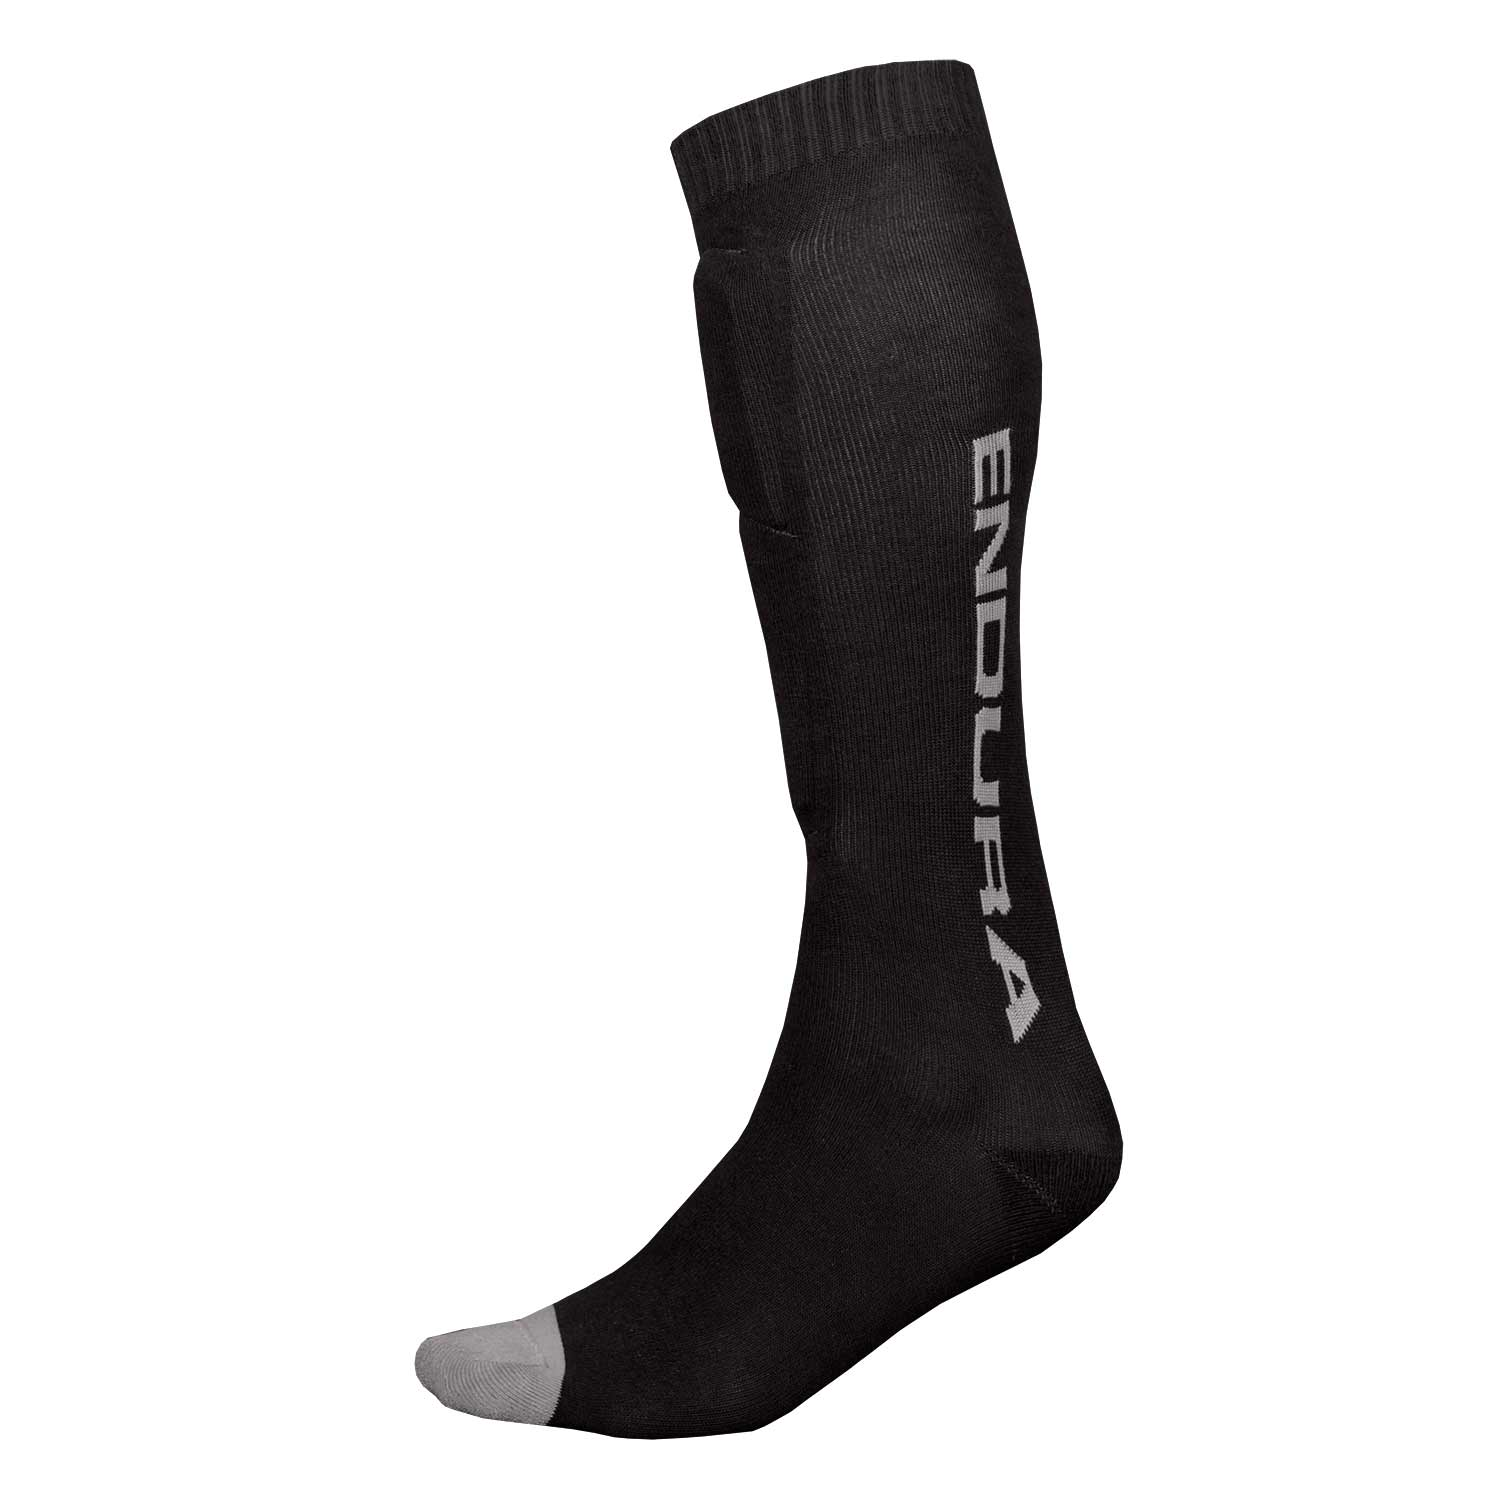 SingleTrack Shin Guard Sock Black